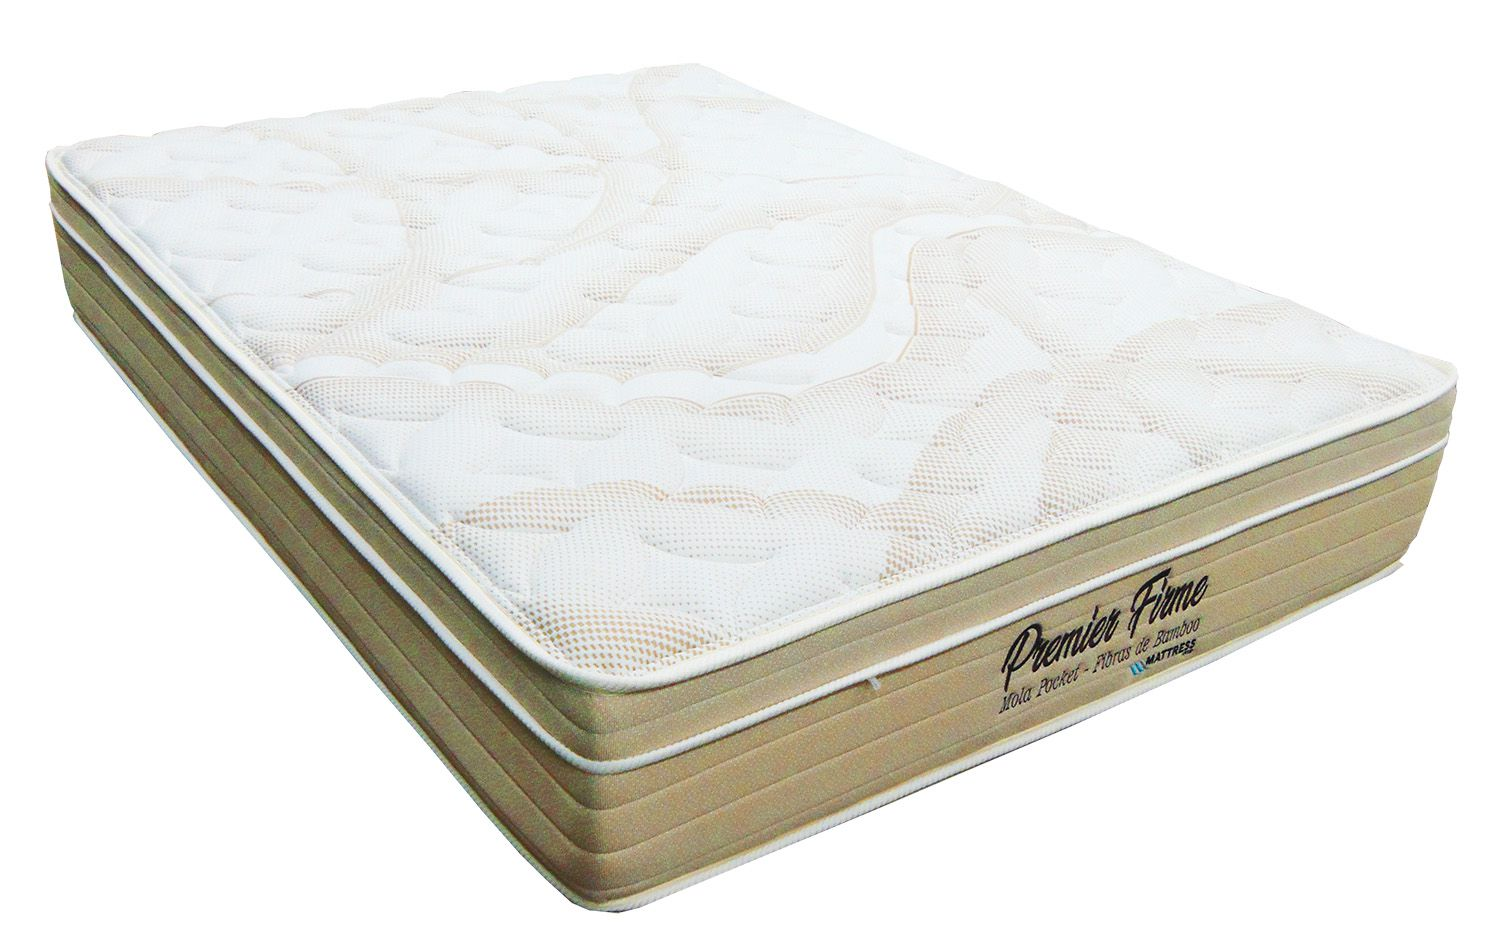 Colchão de Molas Ensacadas King Size 1,93 x 2,03  - Premier Firm - Mattress One - 29cm  - Firme